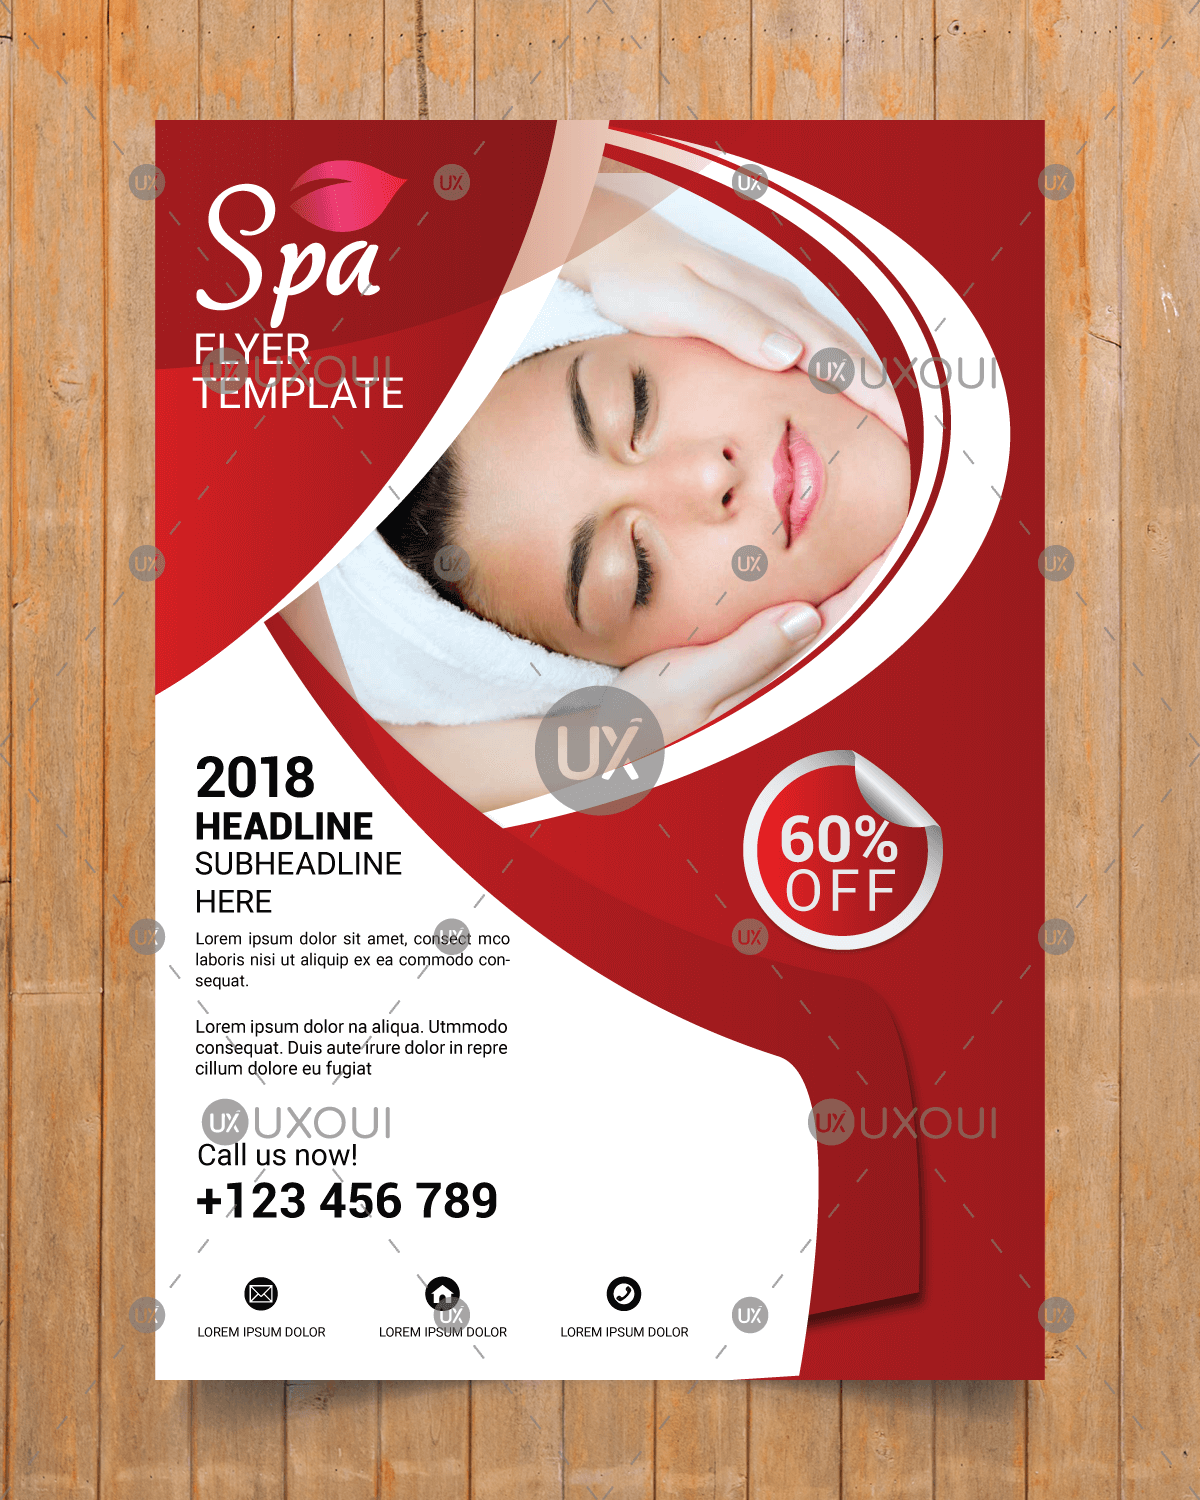 Beauty Wellness Spa Center Business Flyer Template Design Vector